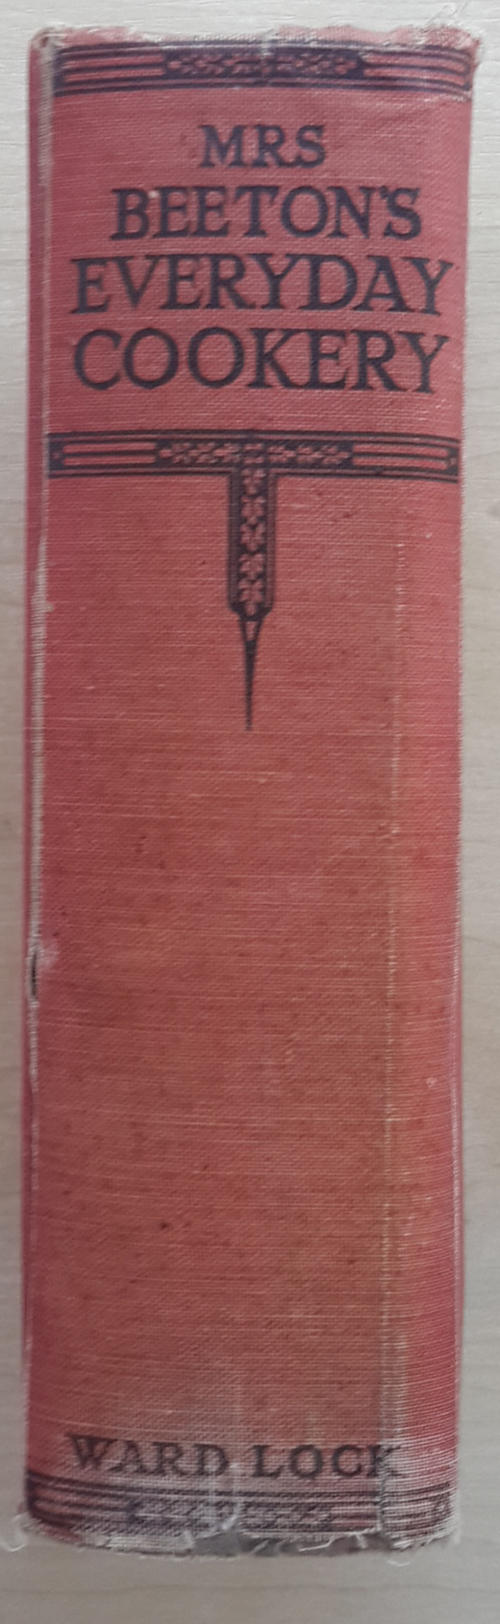 ** Mrs Beetons Everyday Cookery and Housekeeping Book, Facsimile 1893, HB, 2011